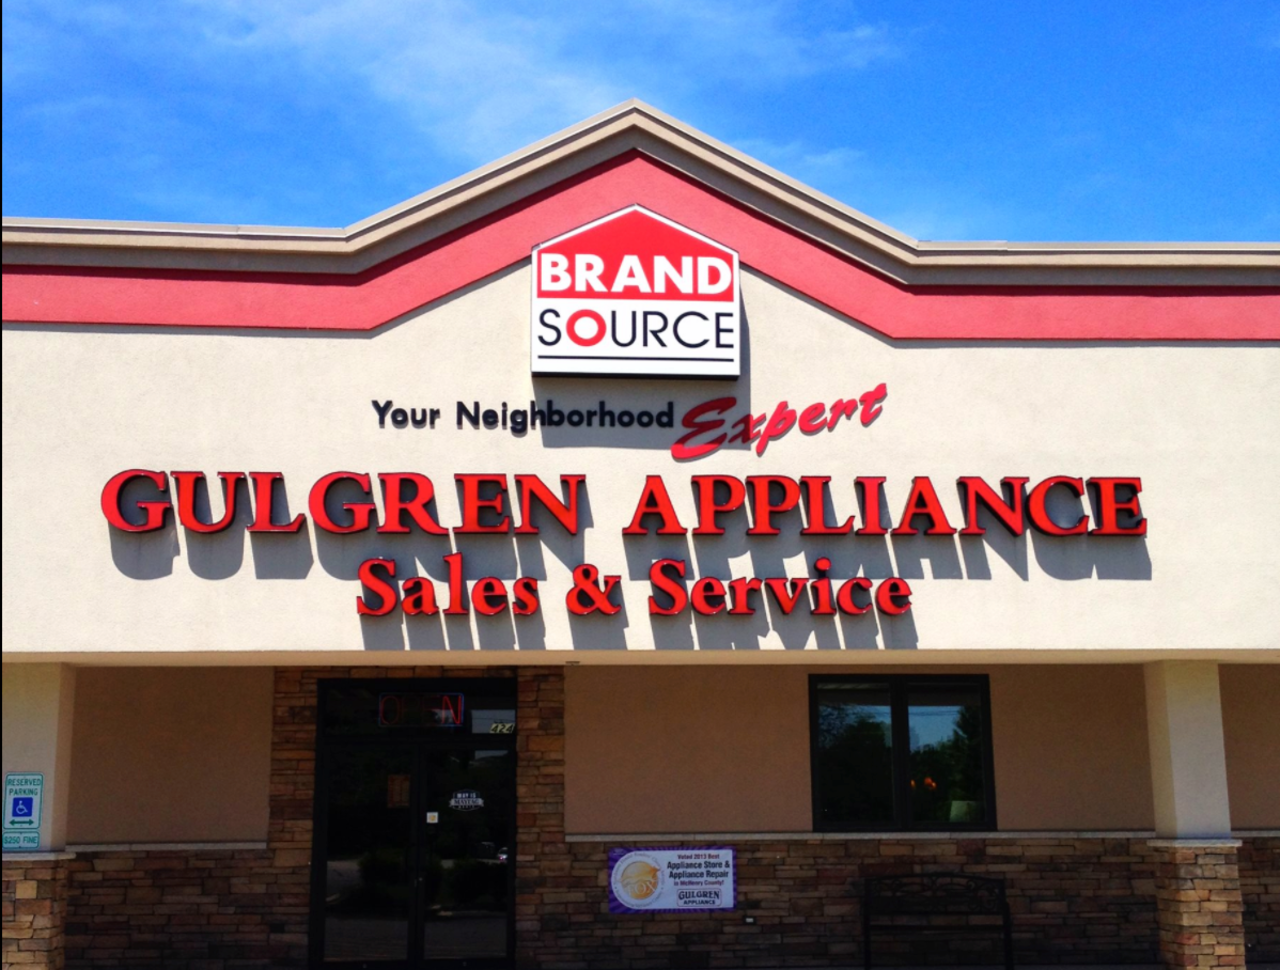 Gulgren Appliance - Shopping - Open Remotely in Crystal Lake IL